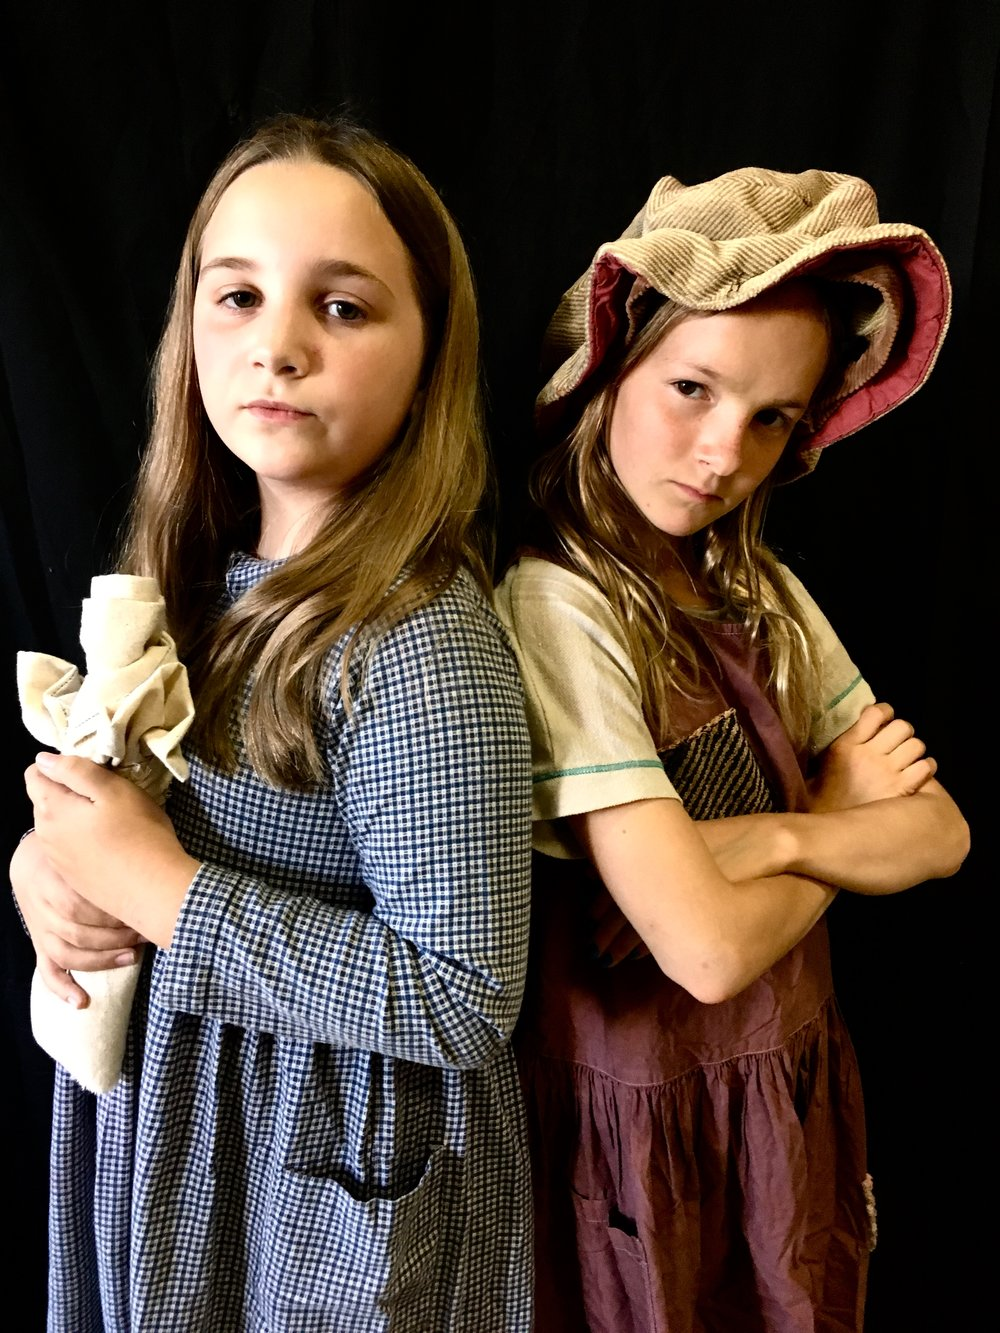 Lucy Shalhoup & Holland Vigneaud alternating in the roles of Little Cosette and Young Eponine.